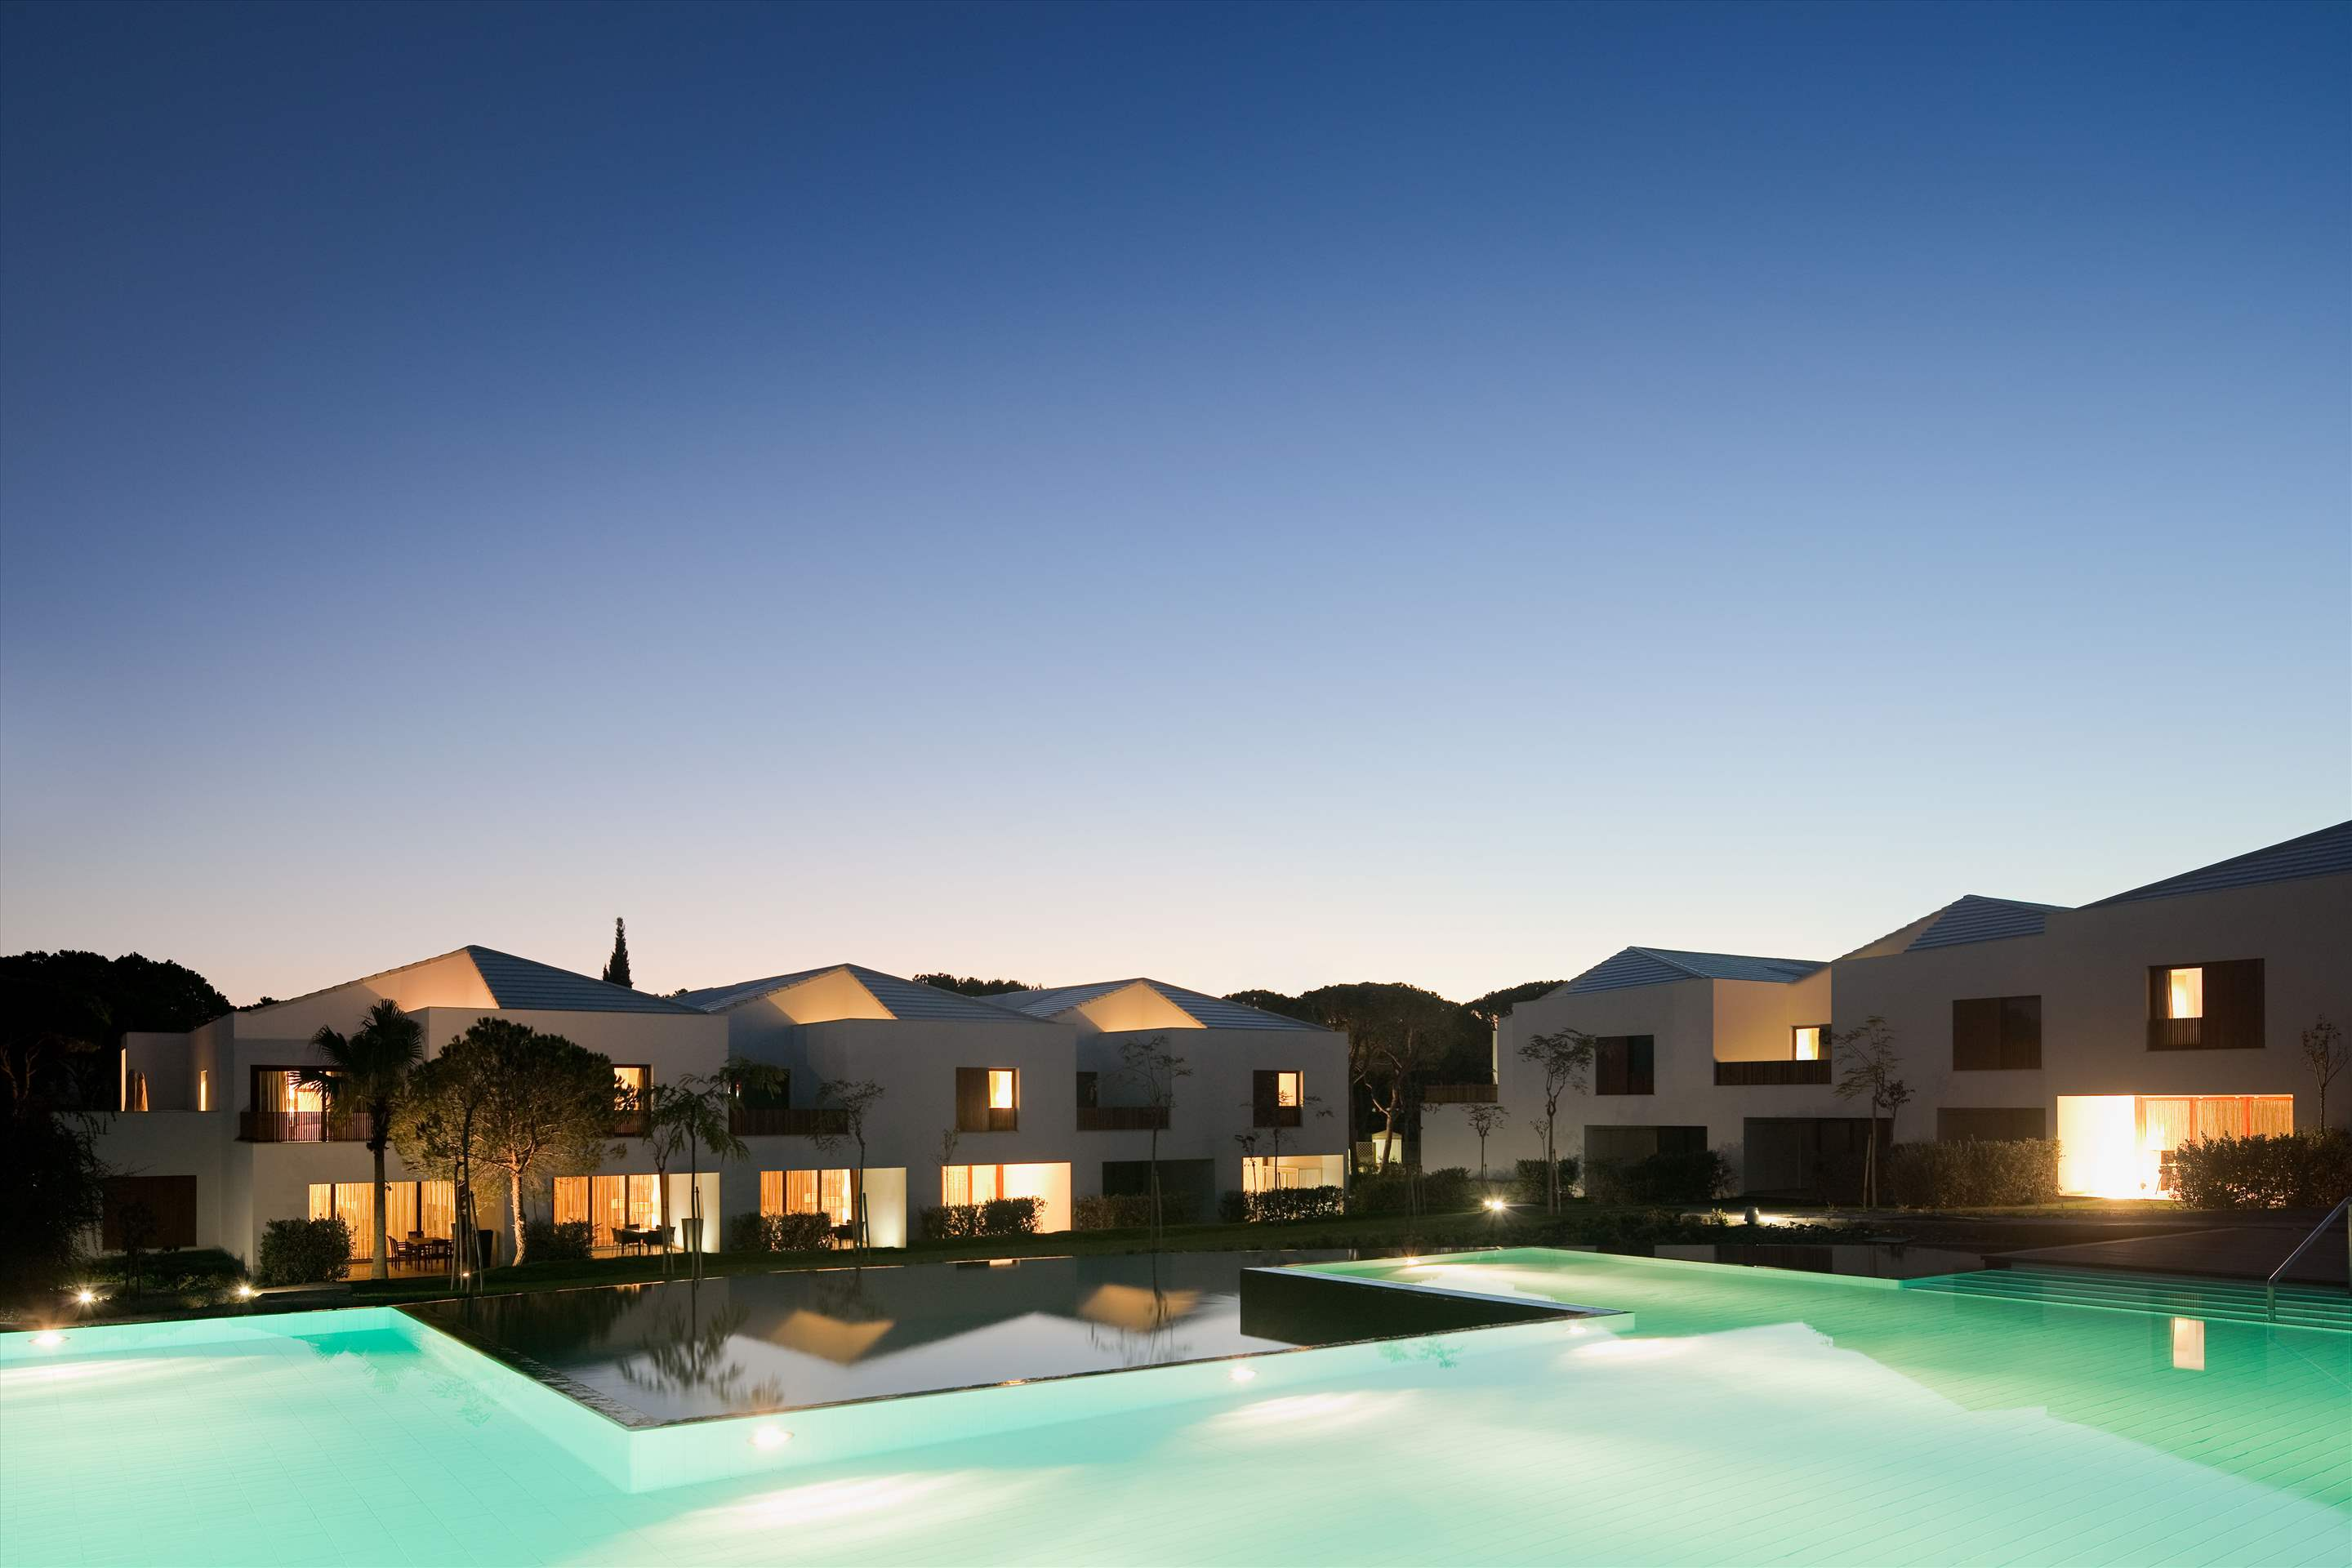 Pine Cliffs Terraces, 4 Bedroom, room only basis, 4 bedroom villa in Pine Cliffs Resort, Algarve Photo #1